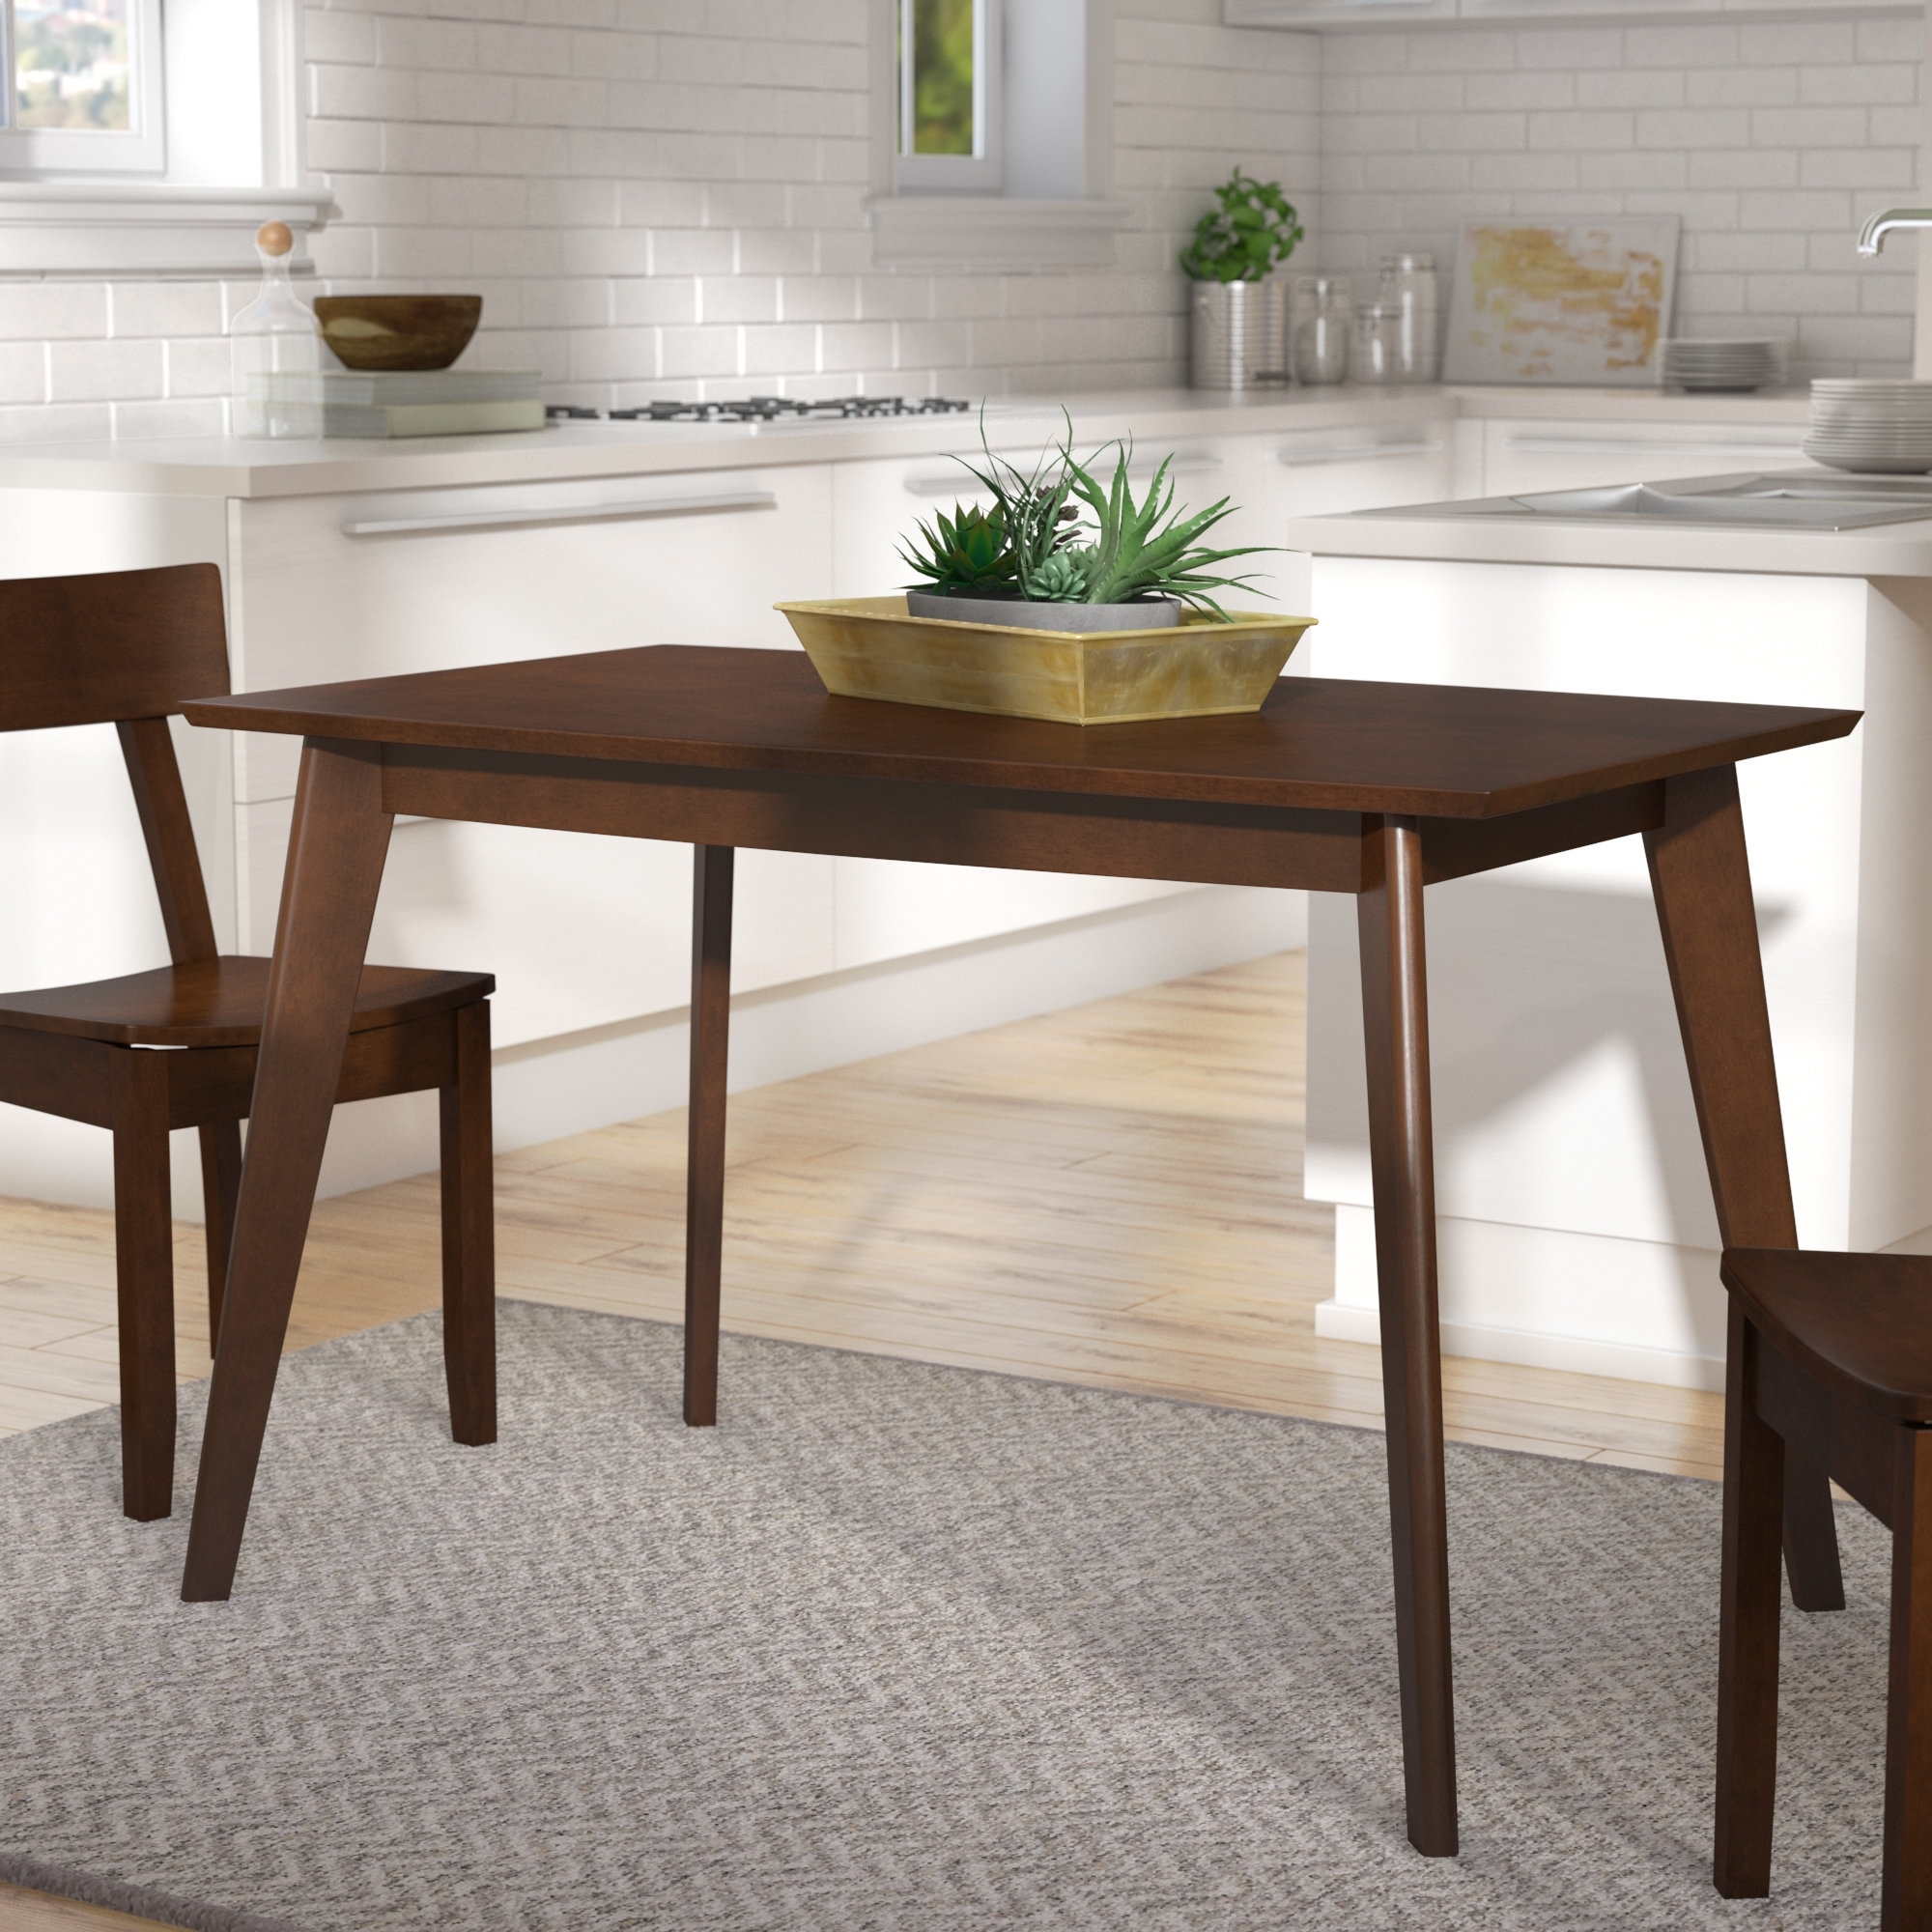 Wayfair With Regard To Kirsten 5 Piece Dining Sets (View 23 of 25)